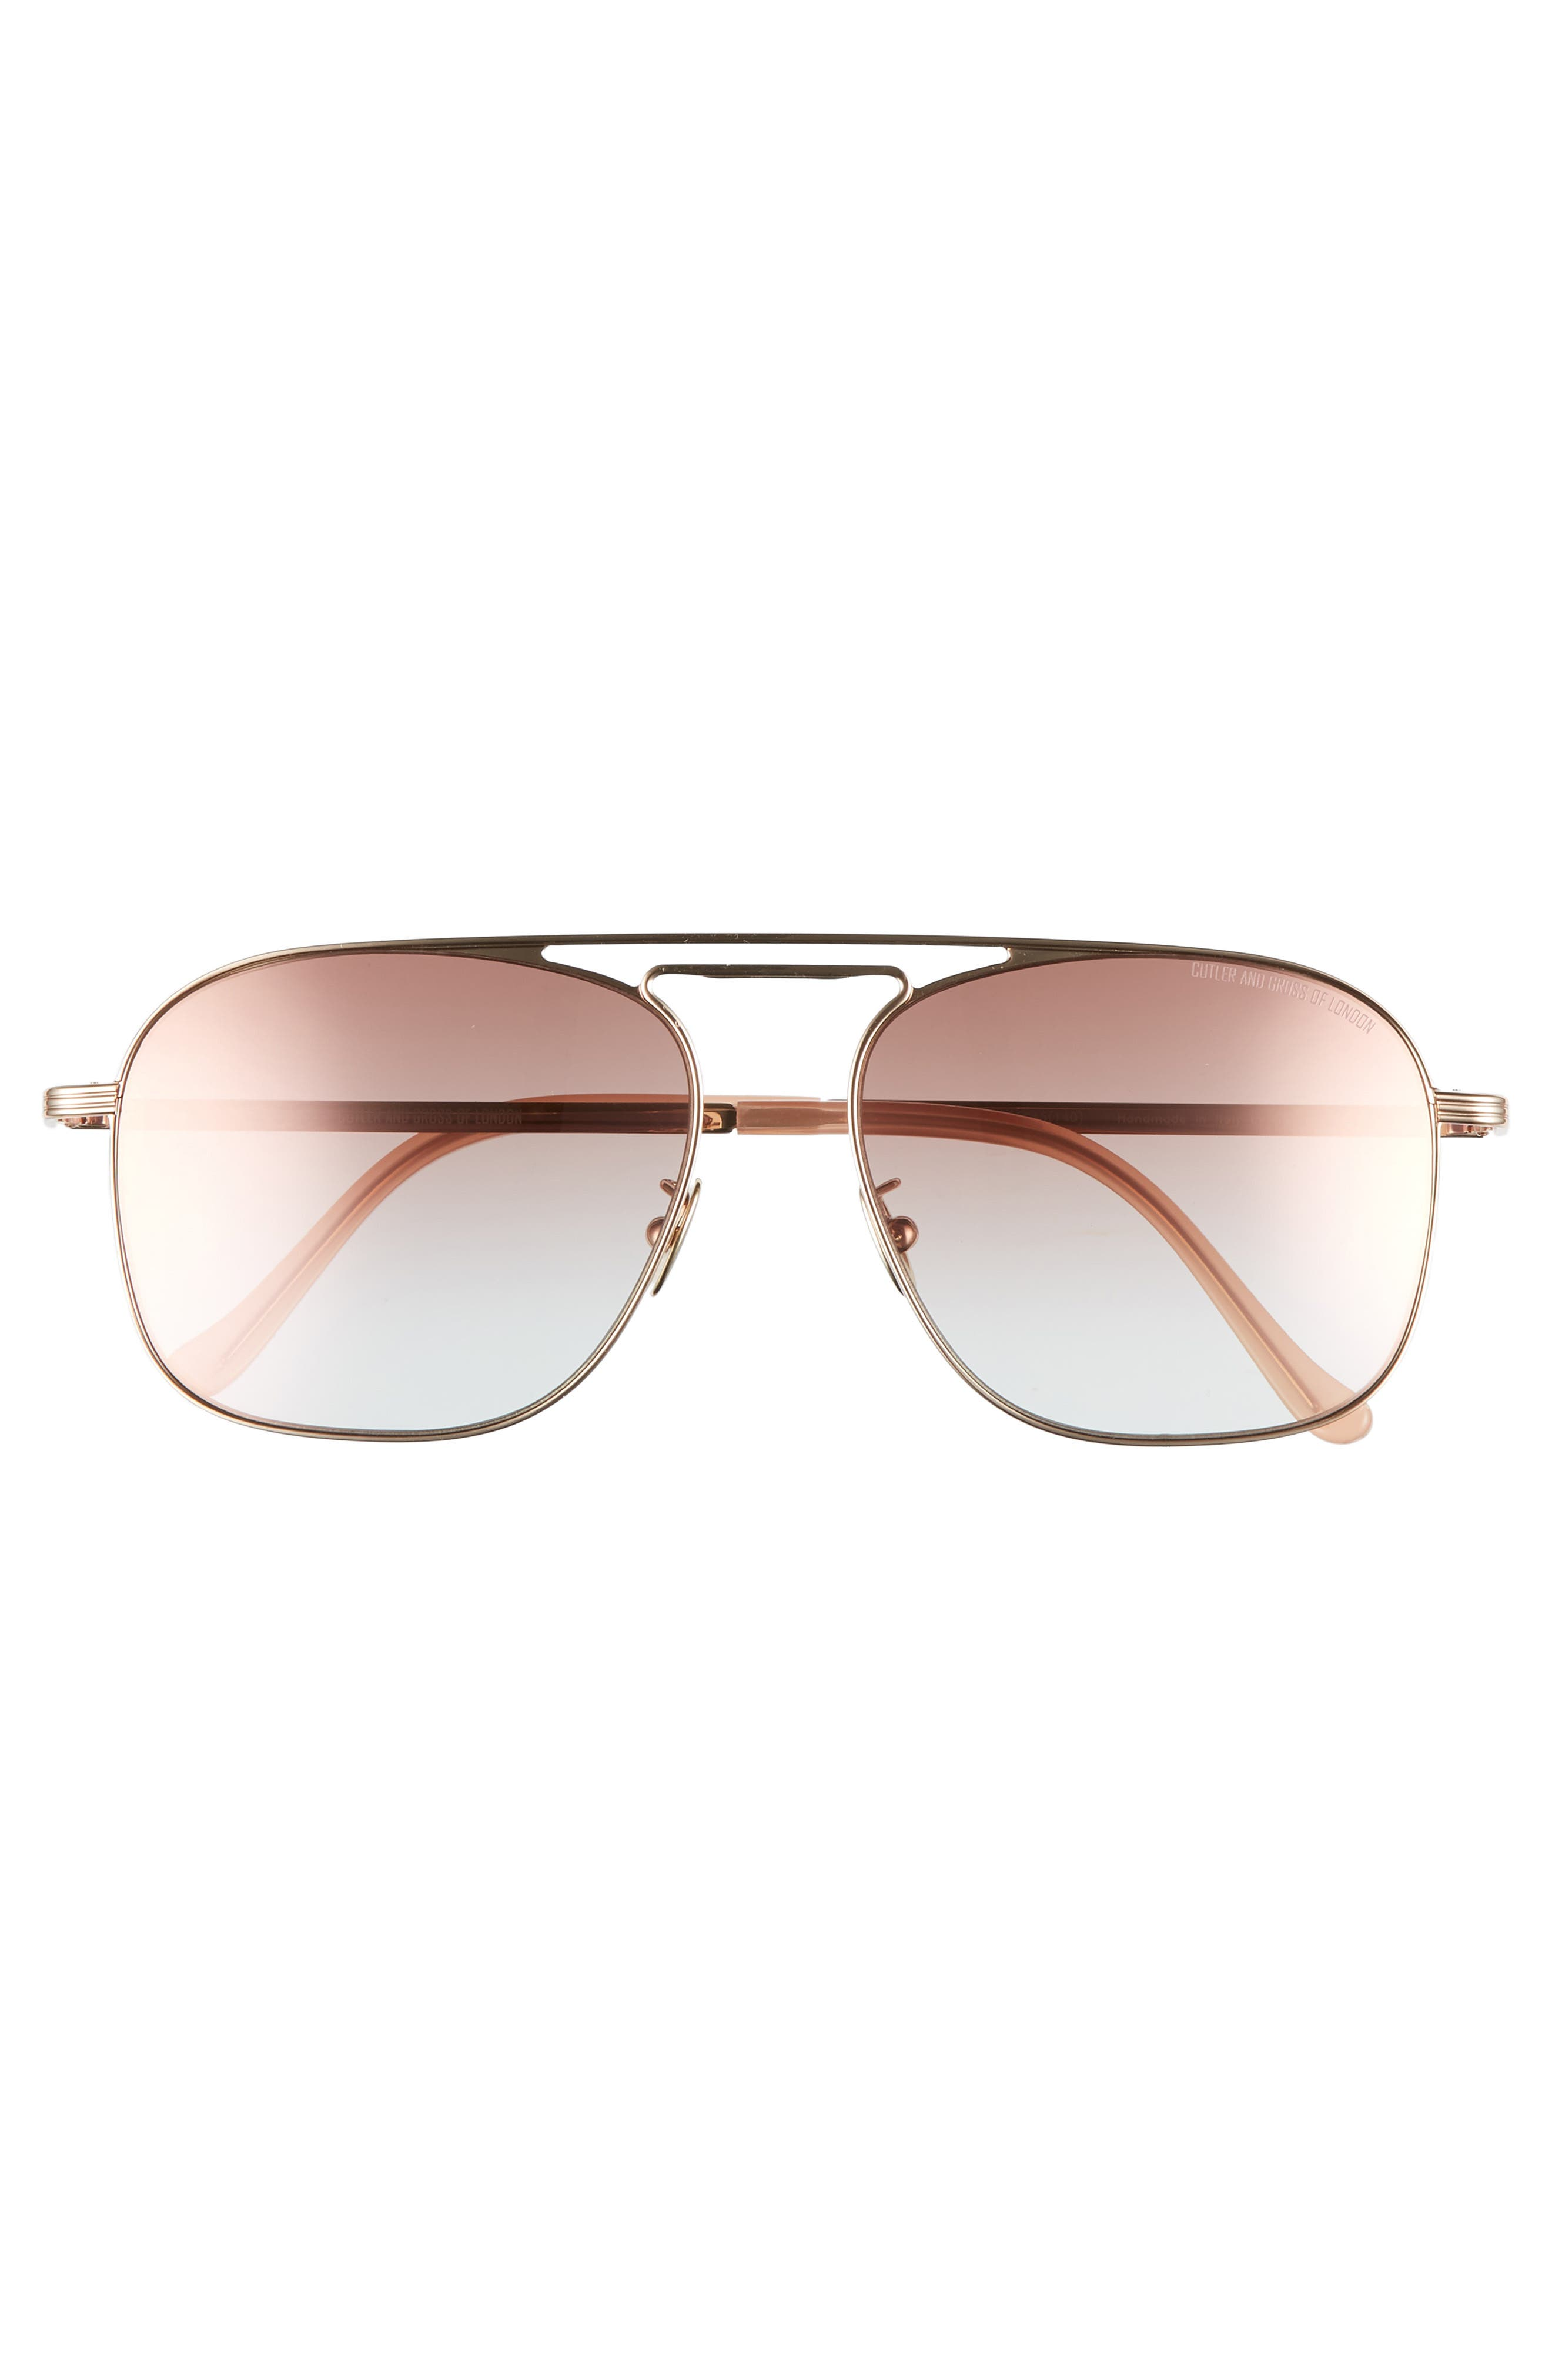 56mm Polarized Navigator Sunglasses,                             Alternate thumbnail 2, color,                             ROSE GOLD/ PINK CHAMPAGNE